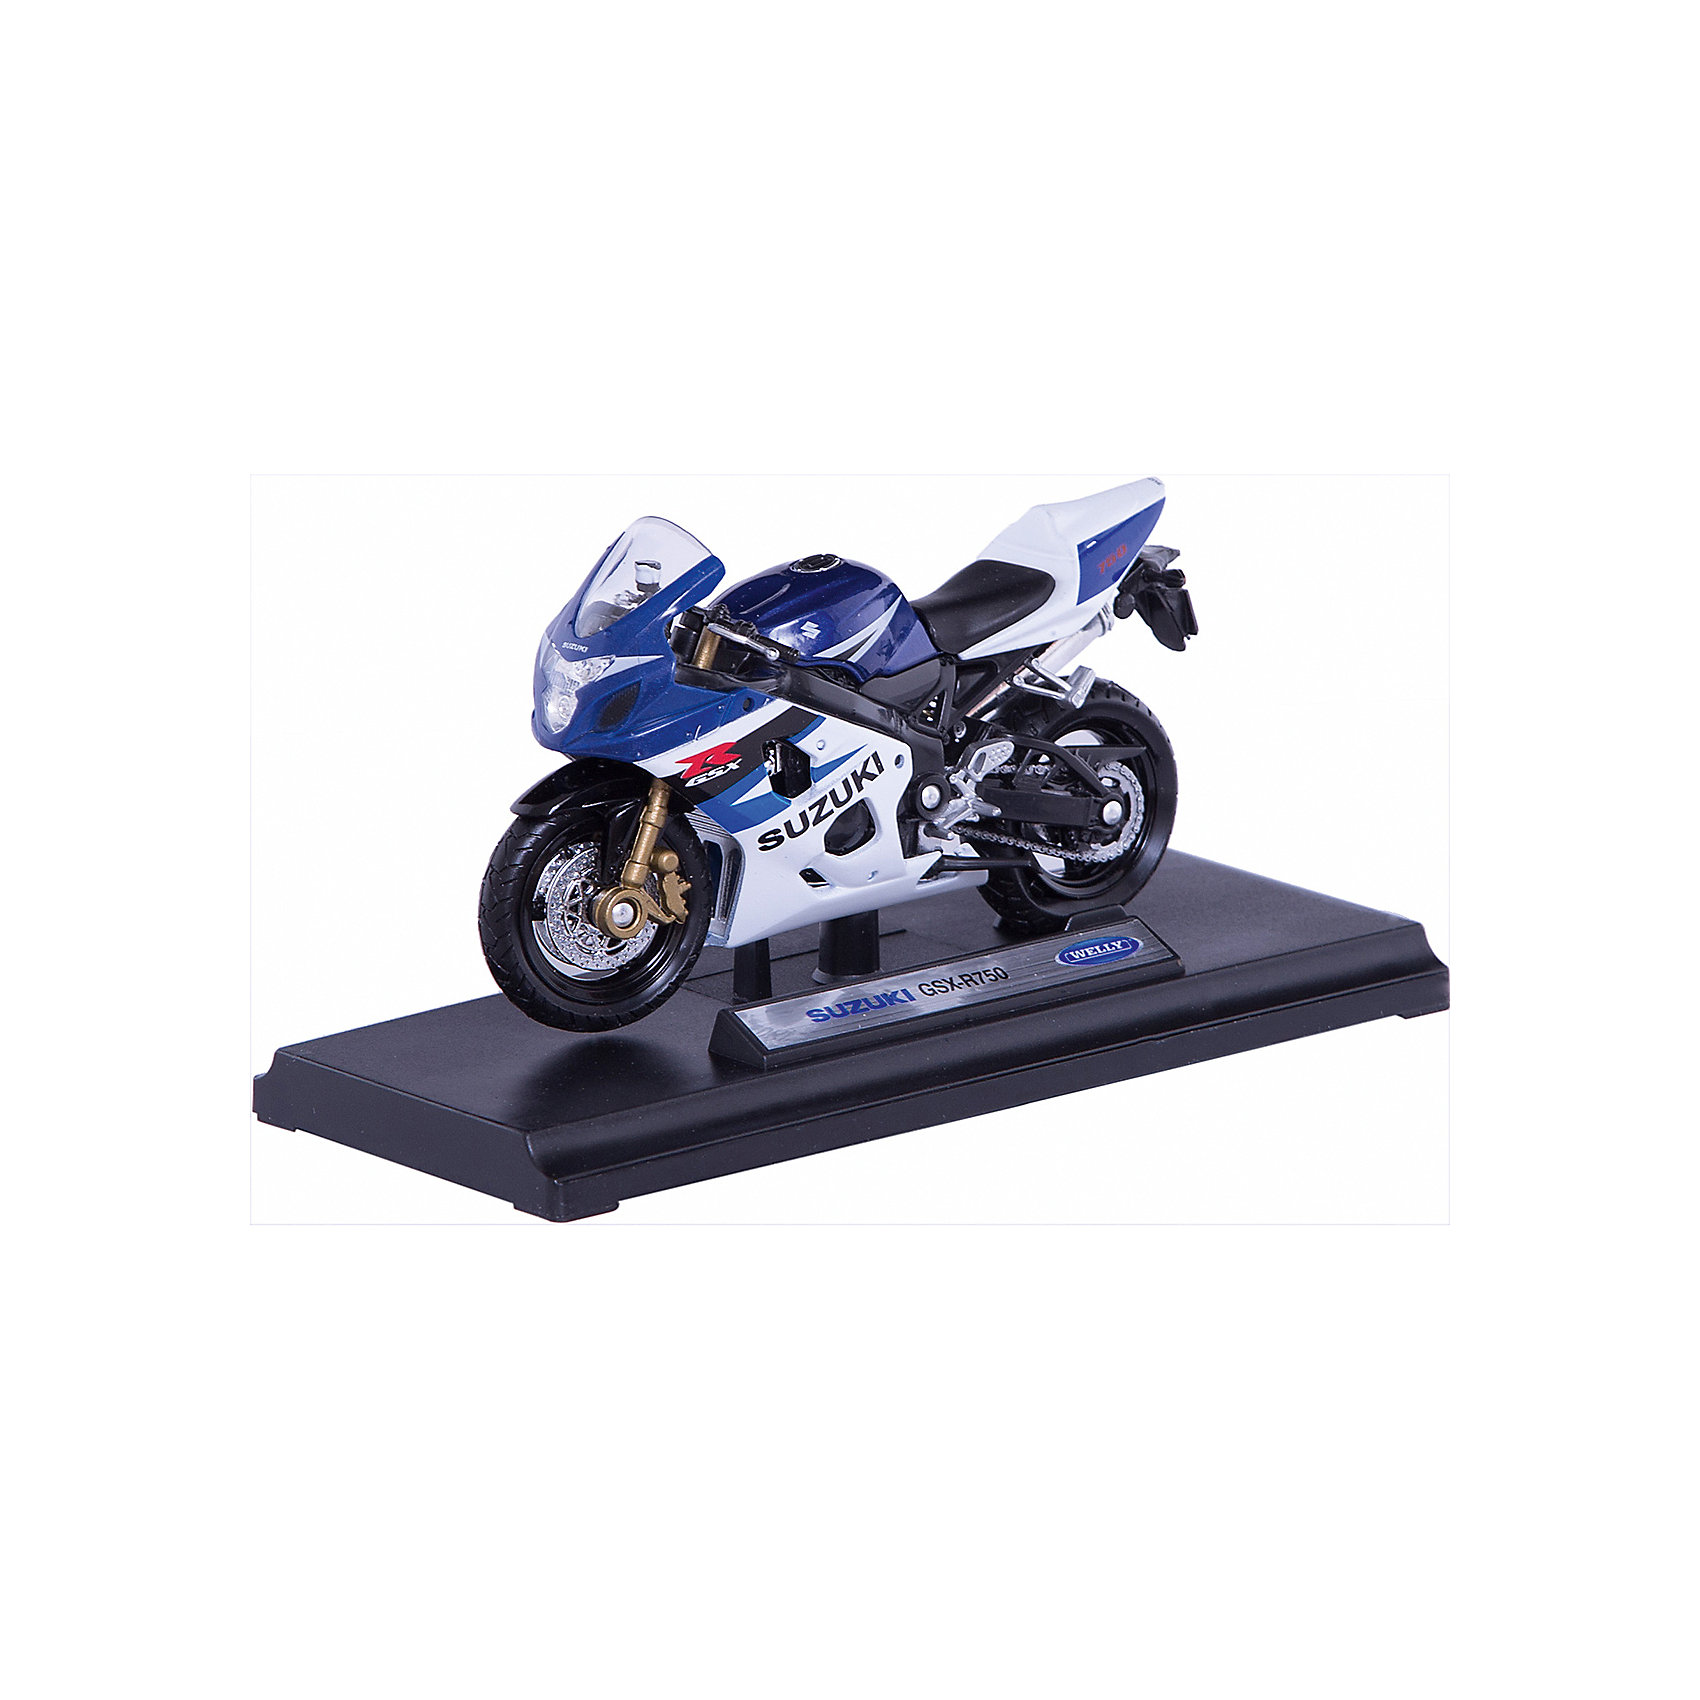 Welly Welly Модель мотоцикла 1:18 MOTORCYCLE / SUZUKI GSX-R750 suzuki gsx r750 motorcycle service repair maintenance shop manual 2004 2015 [cd rom]